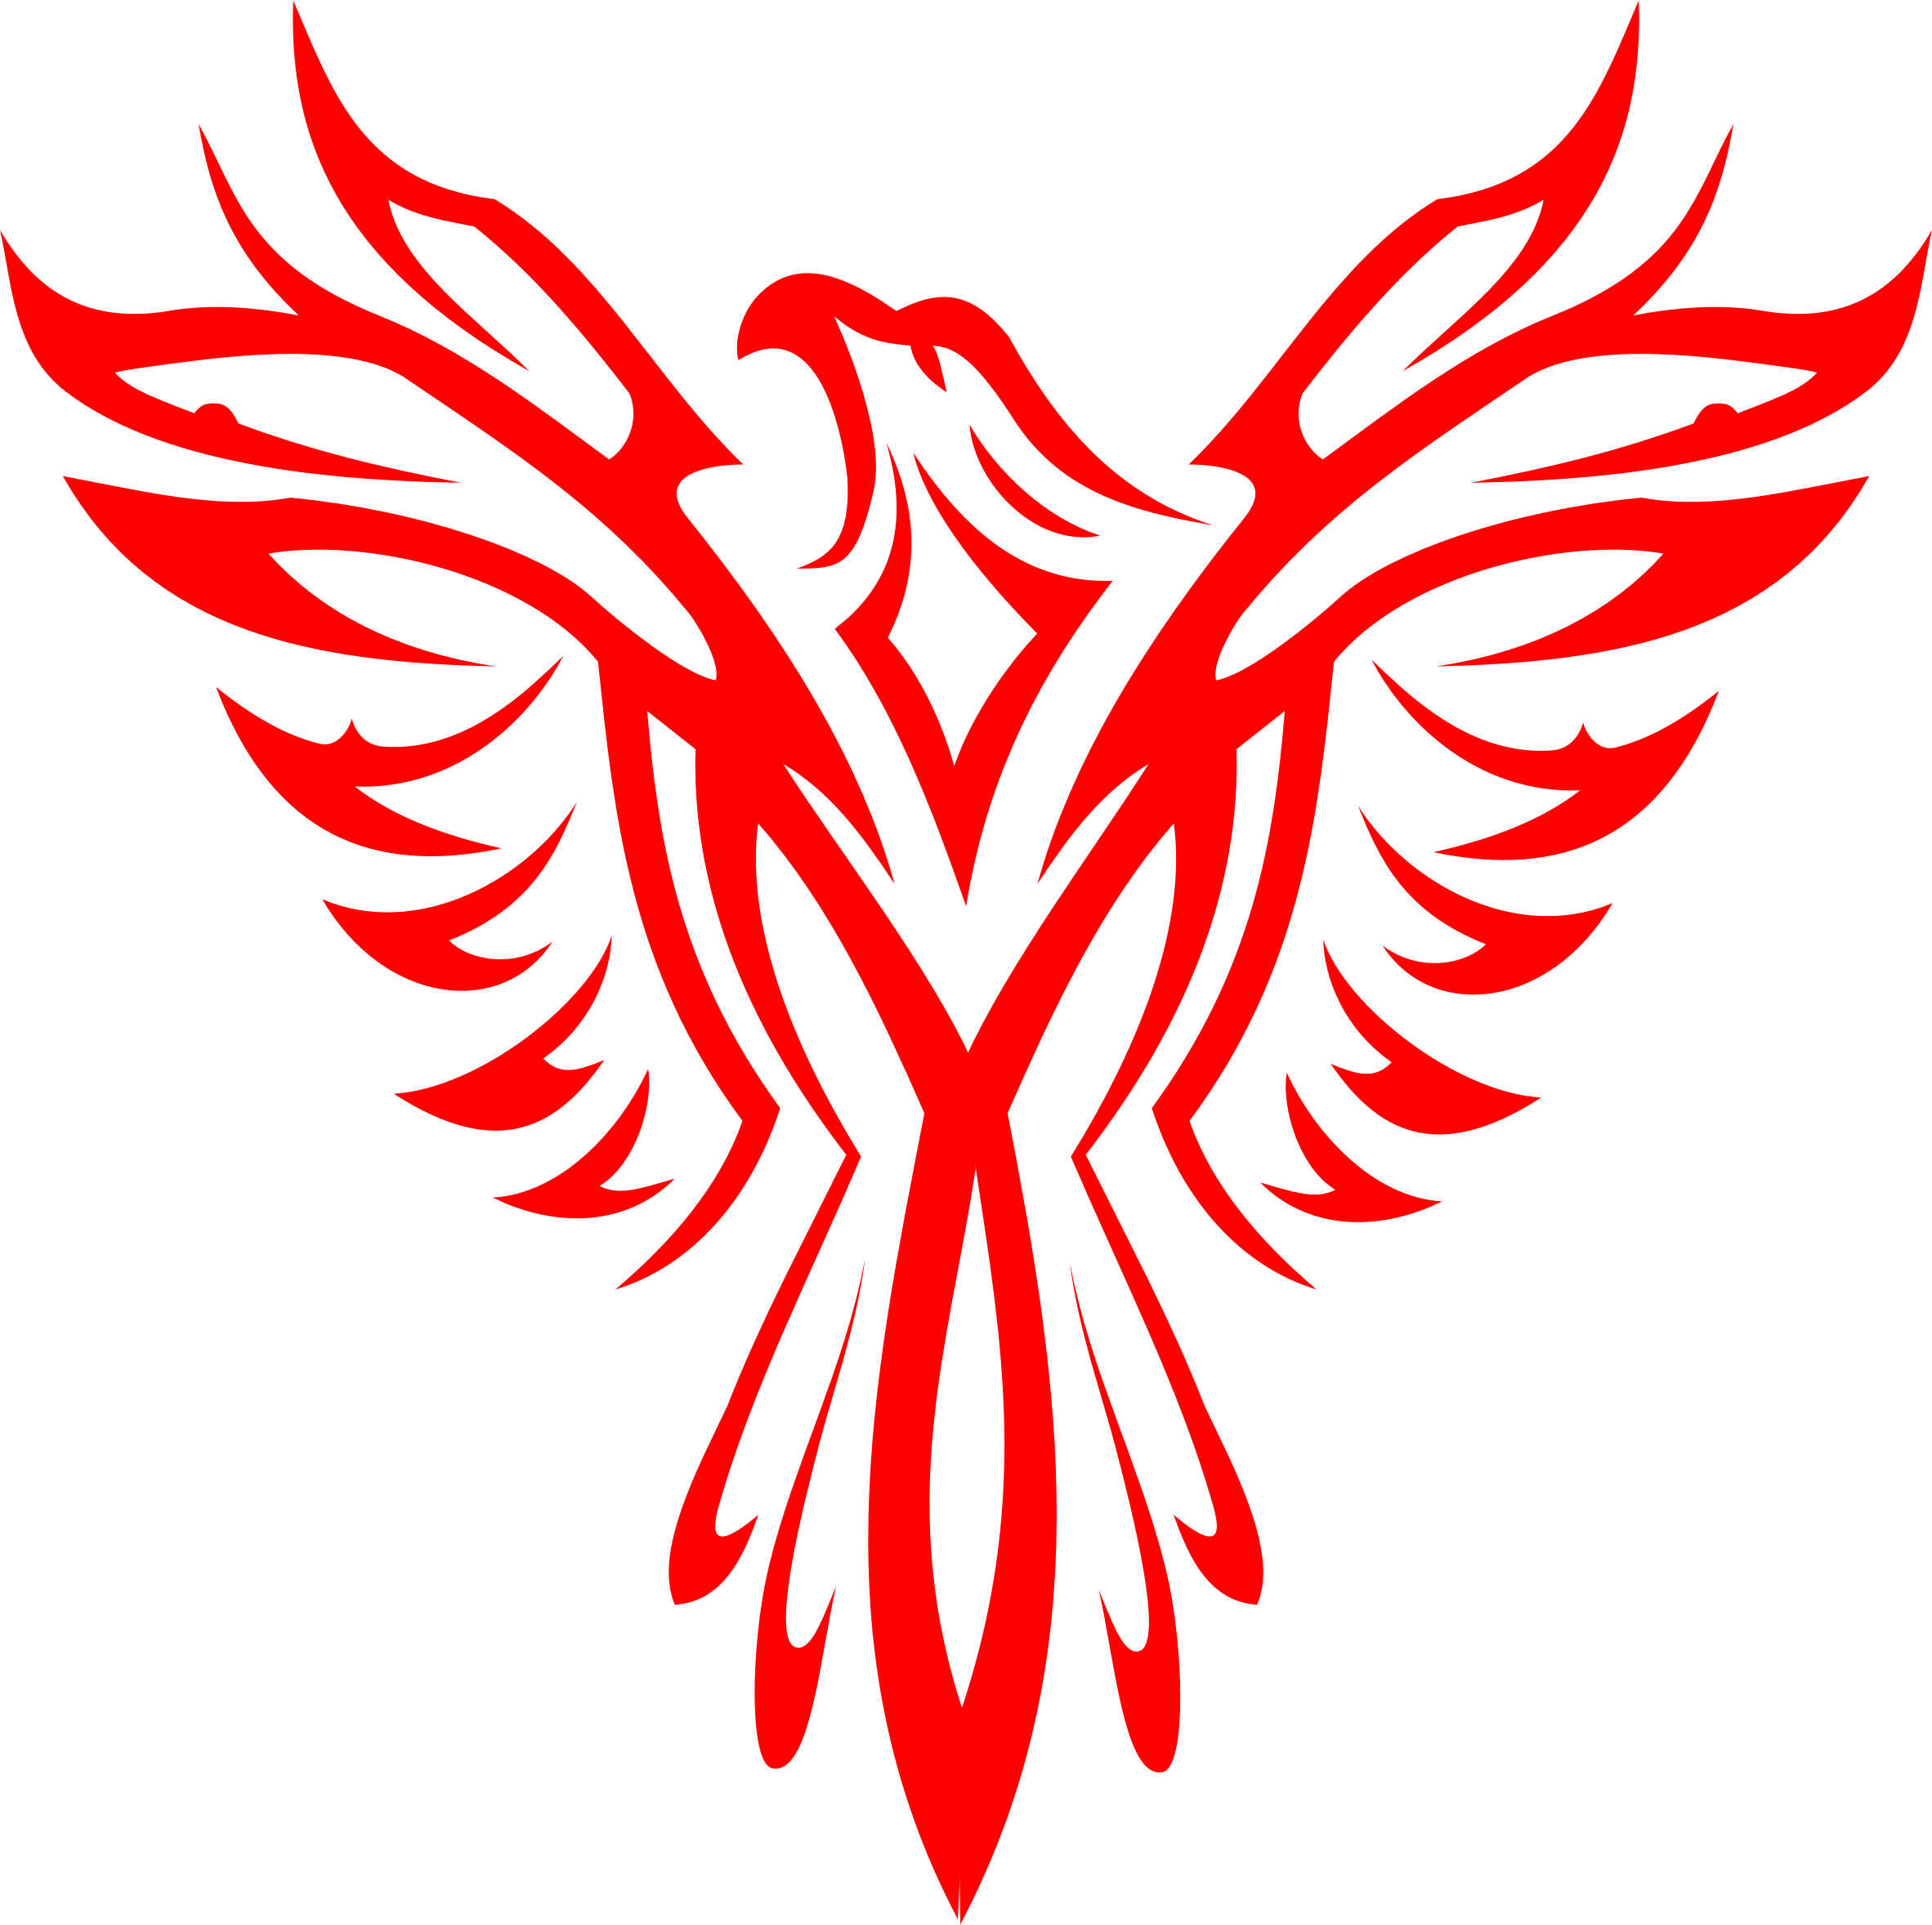 Phoenix clipart logo, Phoenix logo Transparent FREE for.